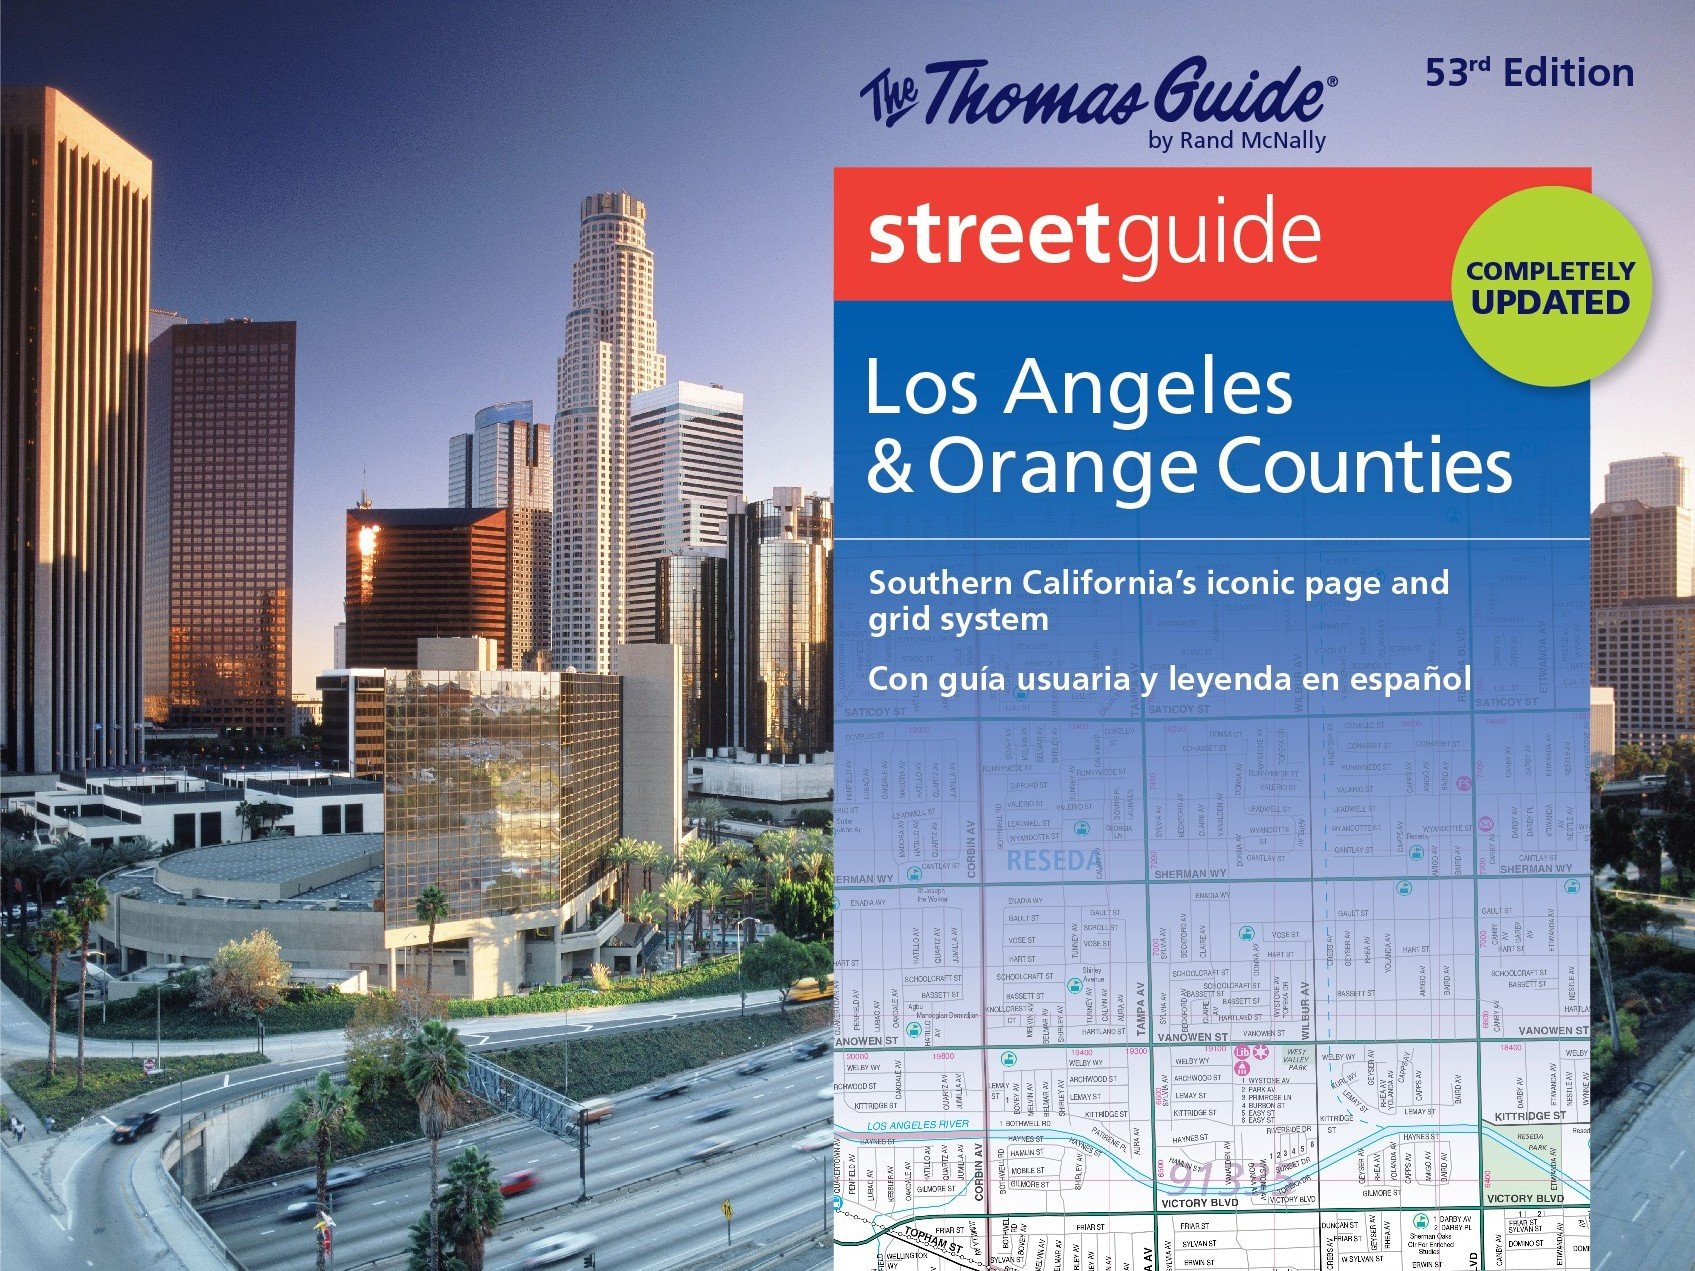 Thomas Guide Maps Thomas Guide Streetguide Los Angeles & Orange County: Southern